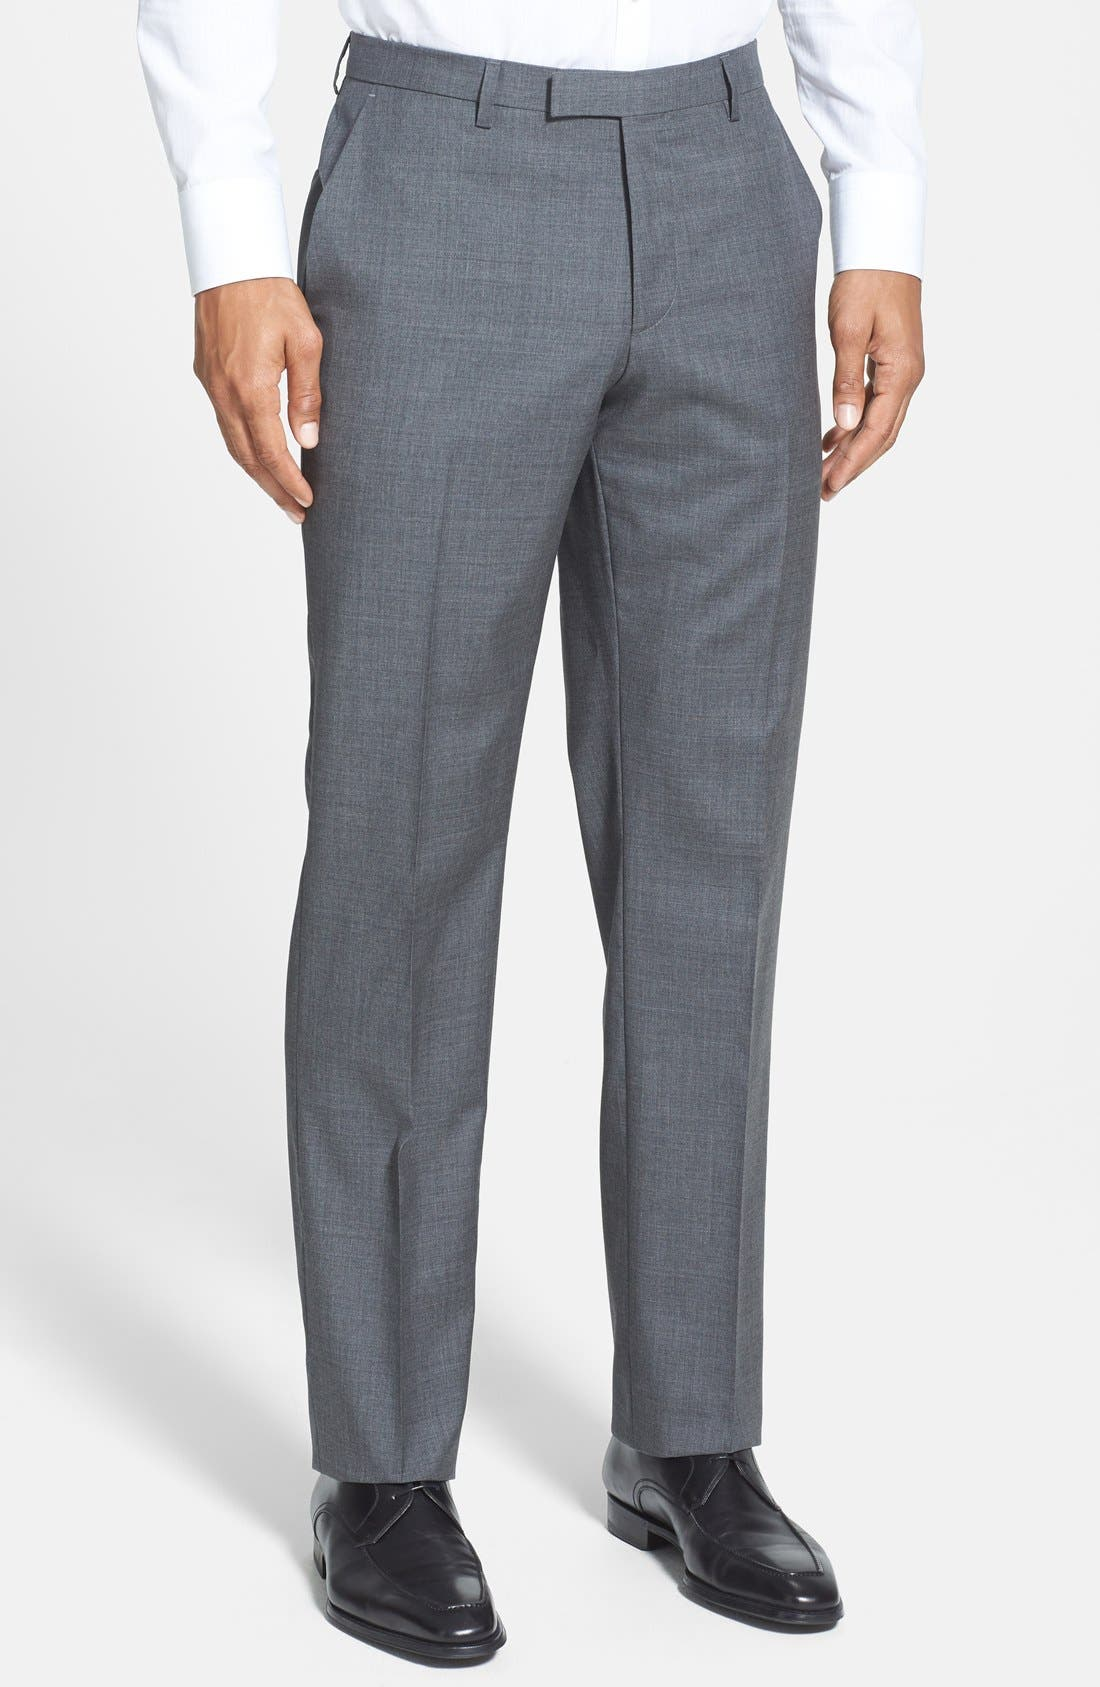 ZZDNUHUGO BOSS,                             BOSS 'Sharp' Slim Fit Flat Front Wool Trousers,                             Main thumbnail 1, color,                             060